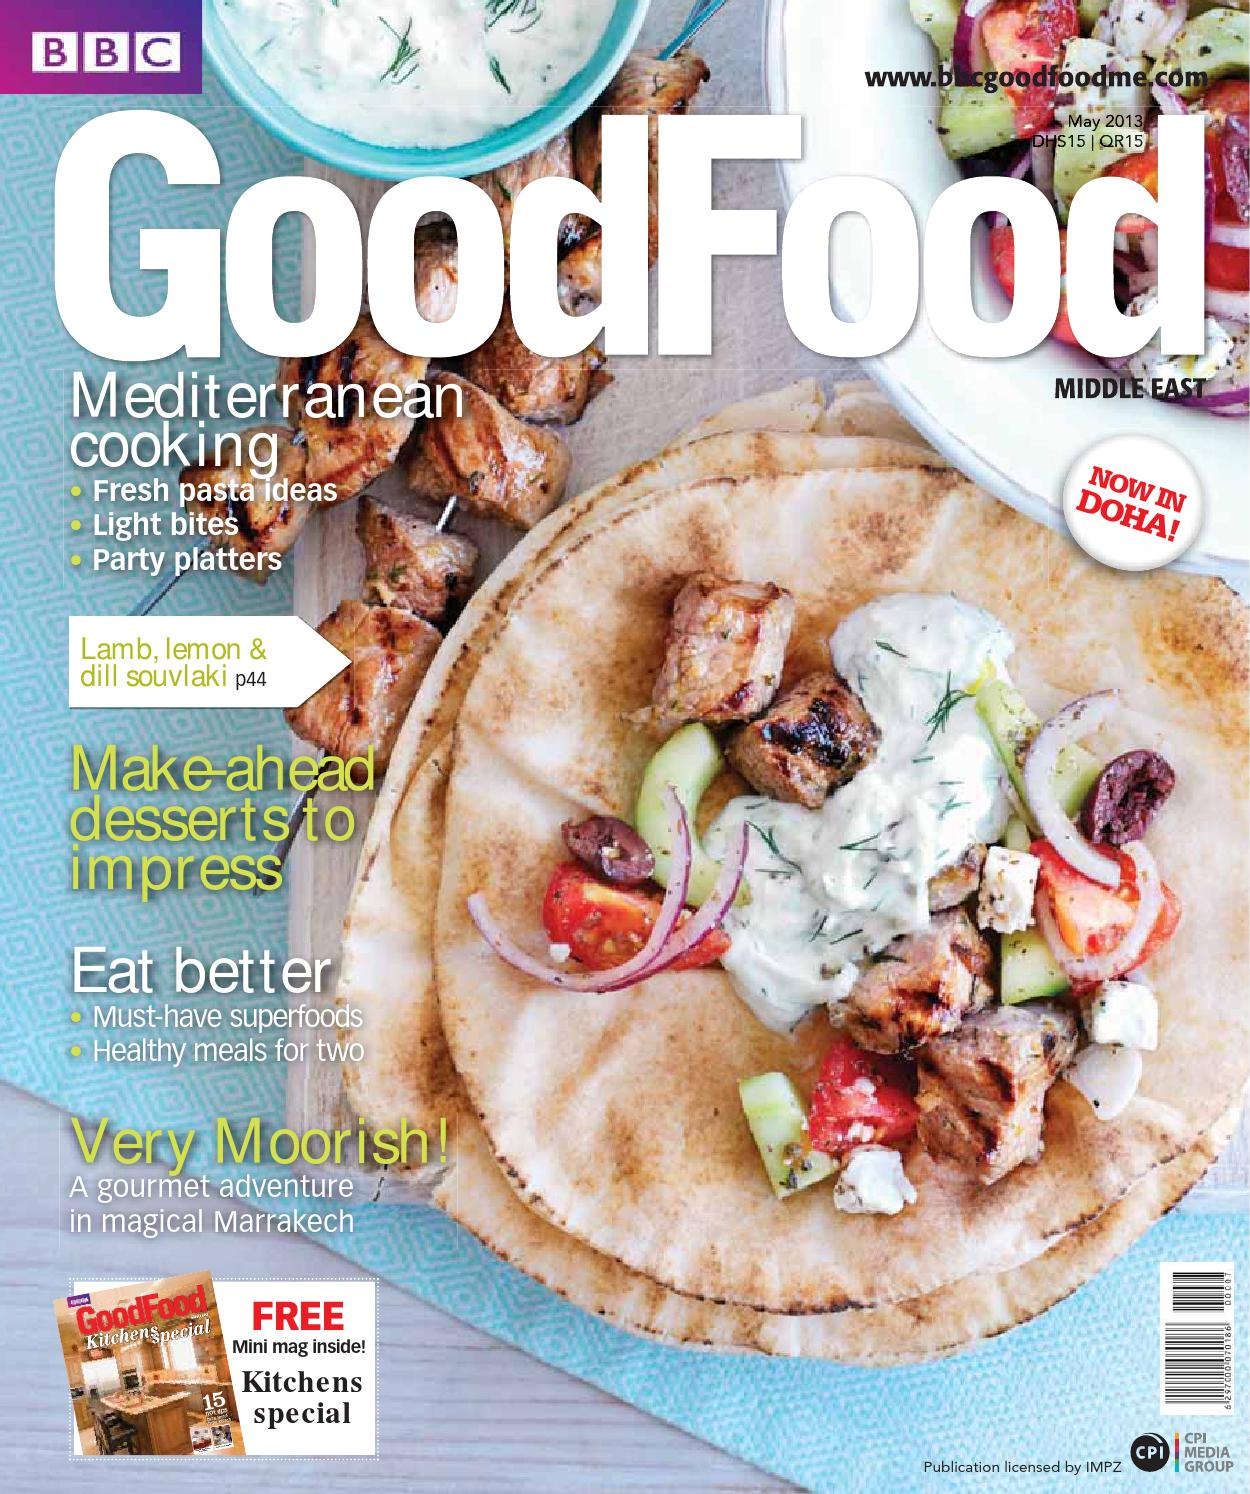 Bbc good food middle east magazine may 2013 by bbc good food me bbc good food middle east magazine may 2013 by bbc good food me issuu forumfinder Gallery